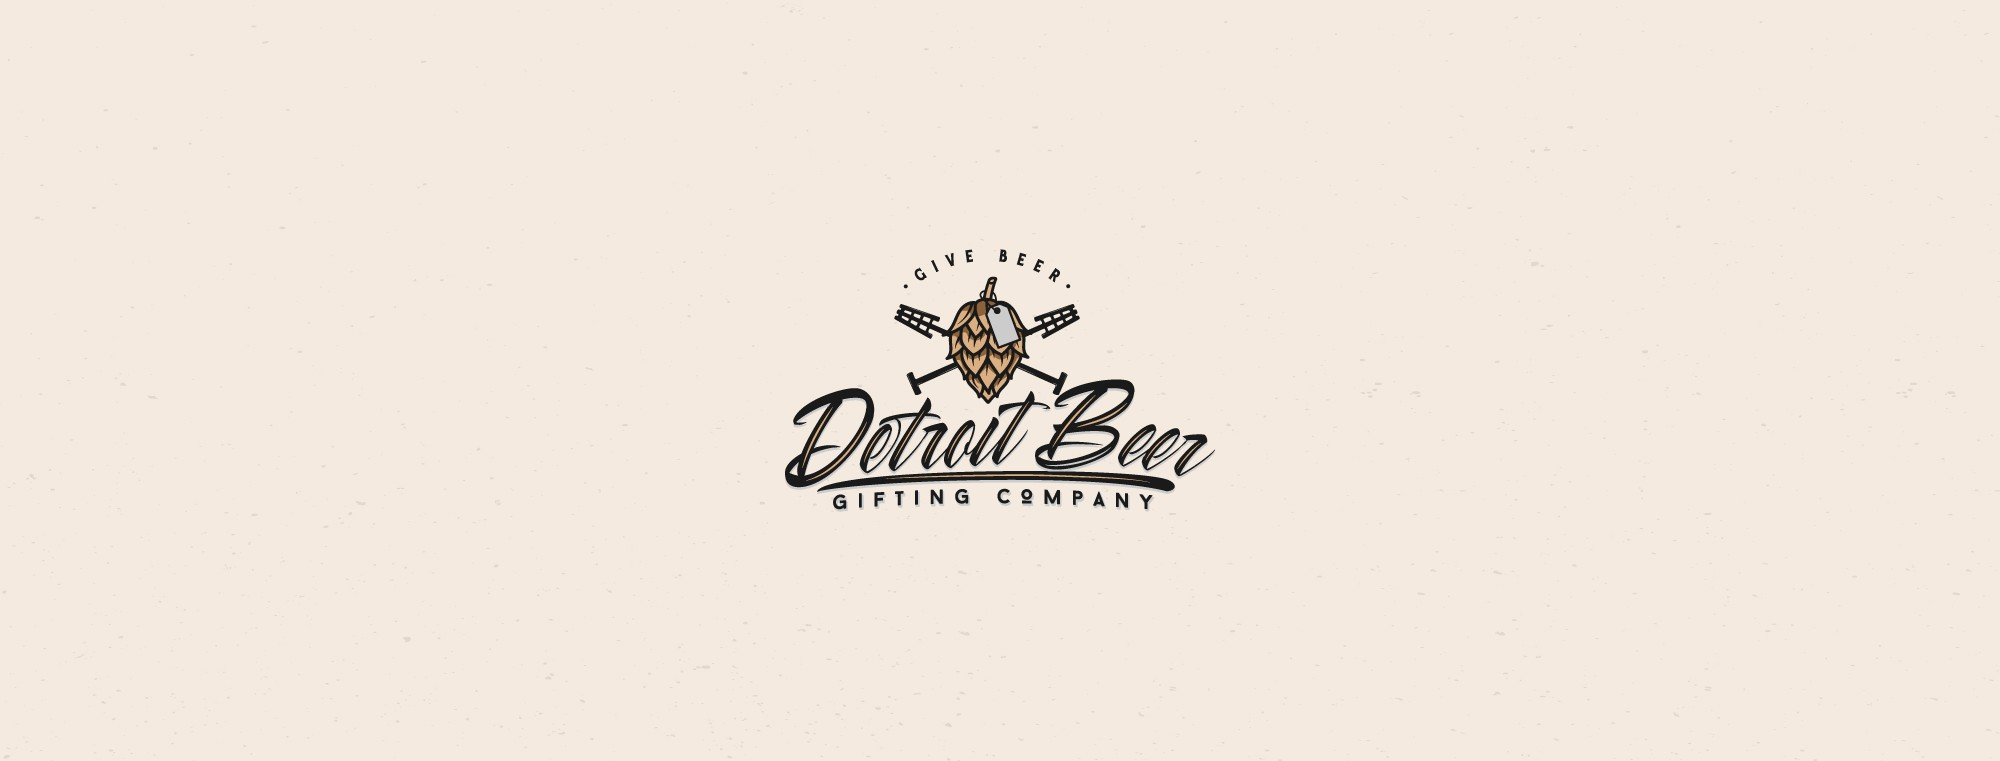 Beer here!  Looking for a logo for a new company in the beer industry.